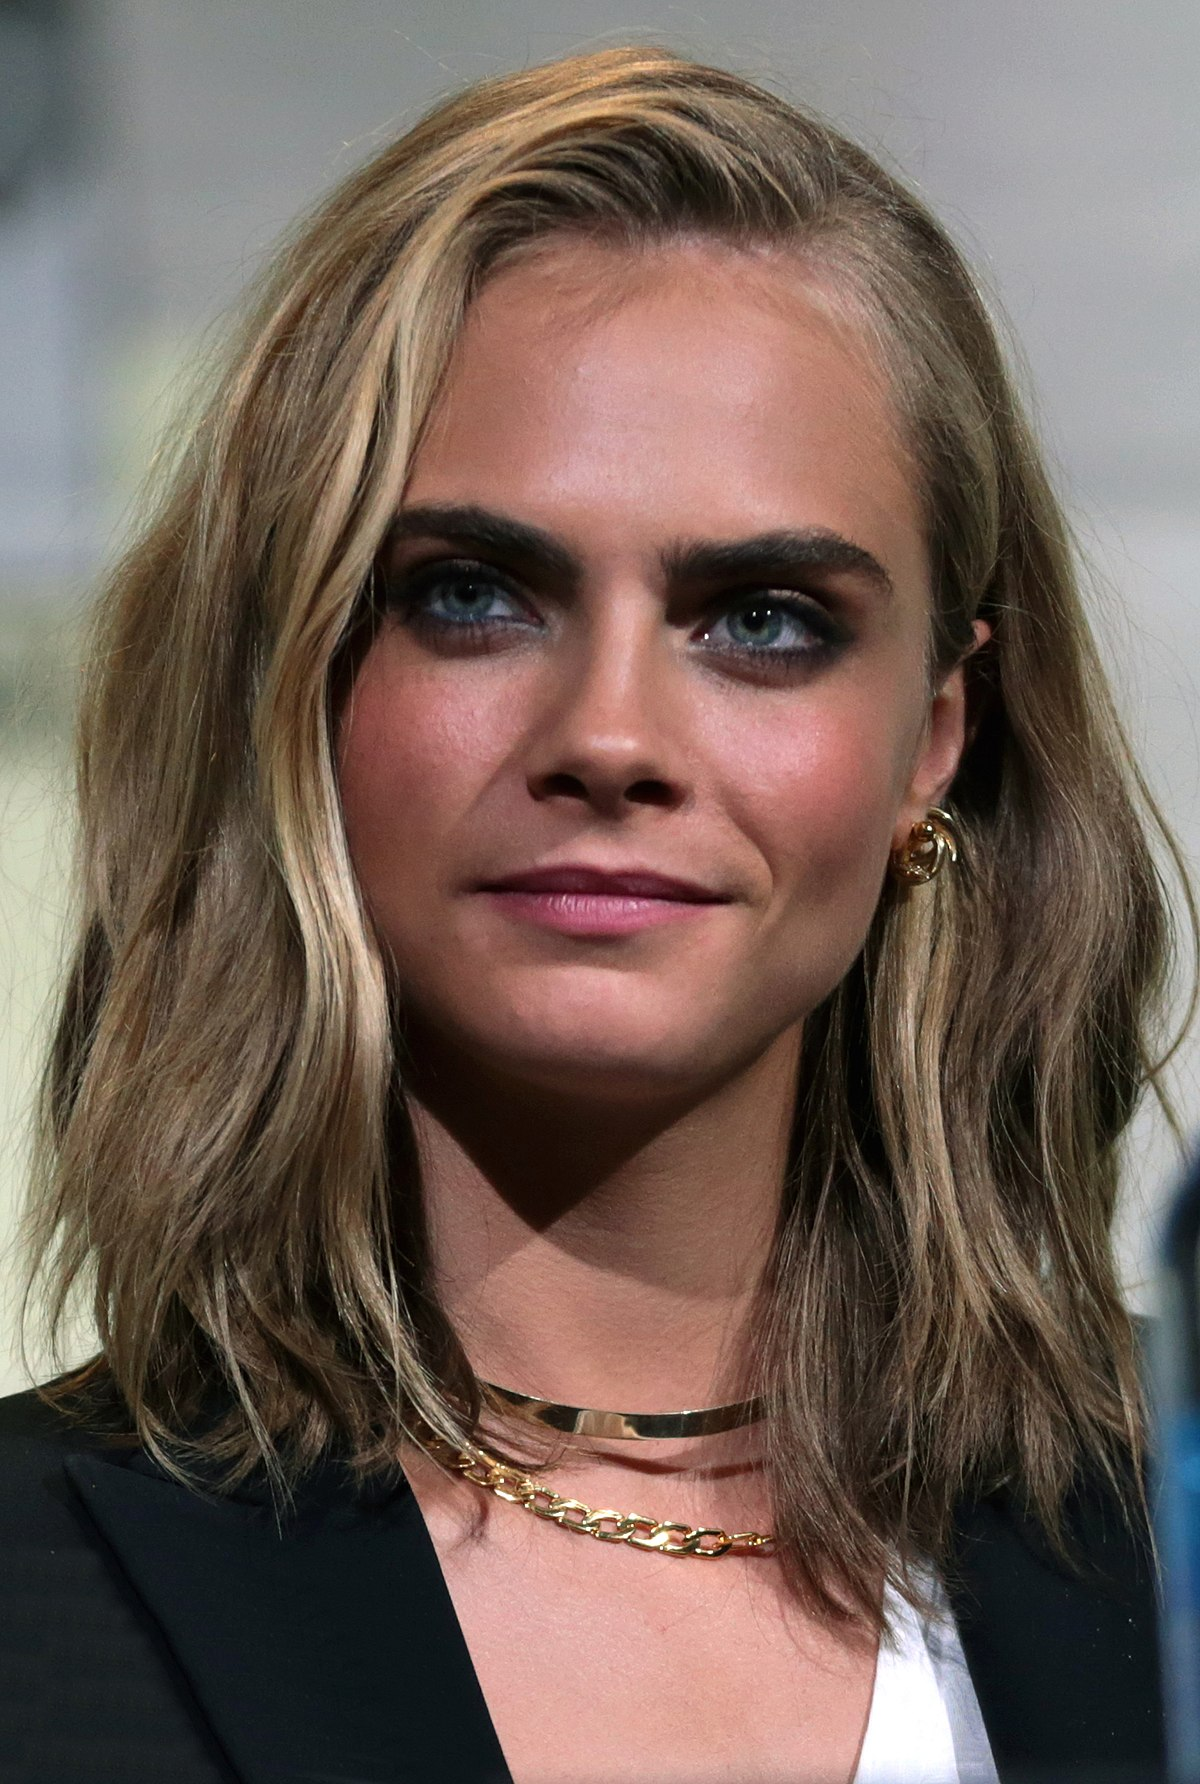 cara delevingne wikipedia la enciclopedia libre. Black Bedroom Furniture Sets. Home Design Ideas